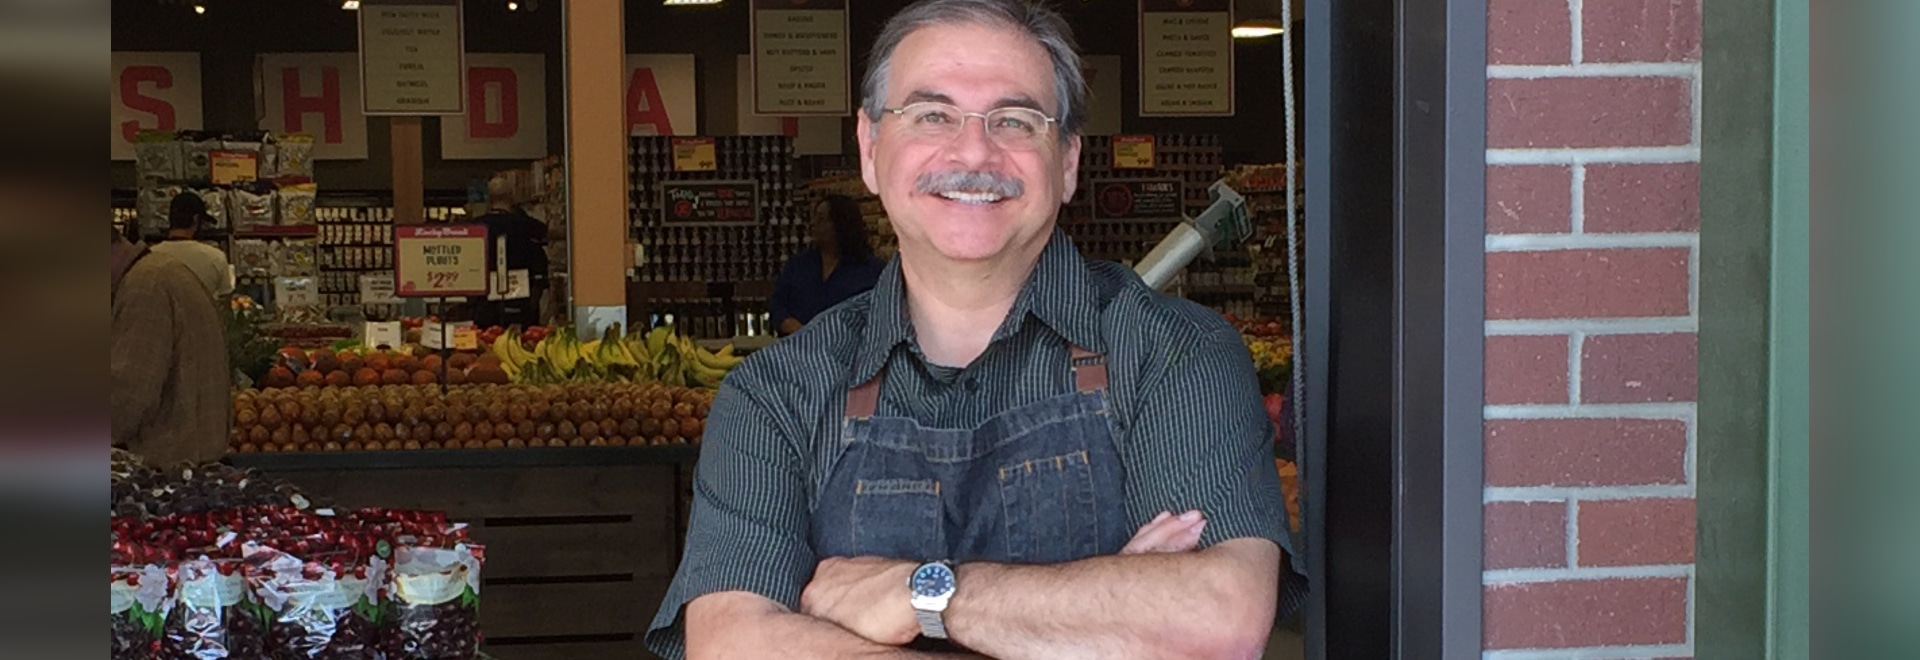 The Produce Aisle with Armand Lobato ( Photo by The Packer staff )